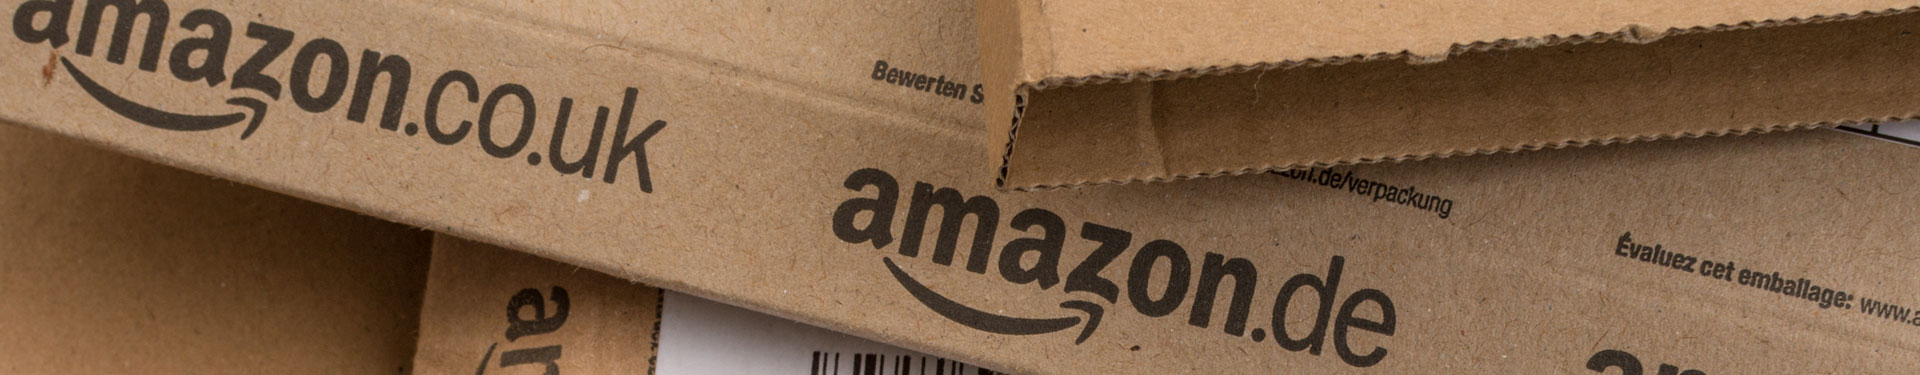 How to buy on Amazon UK and Ship to the US